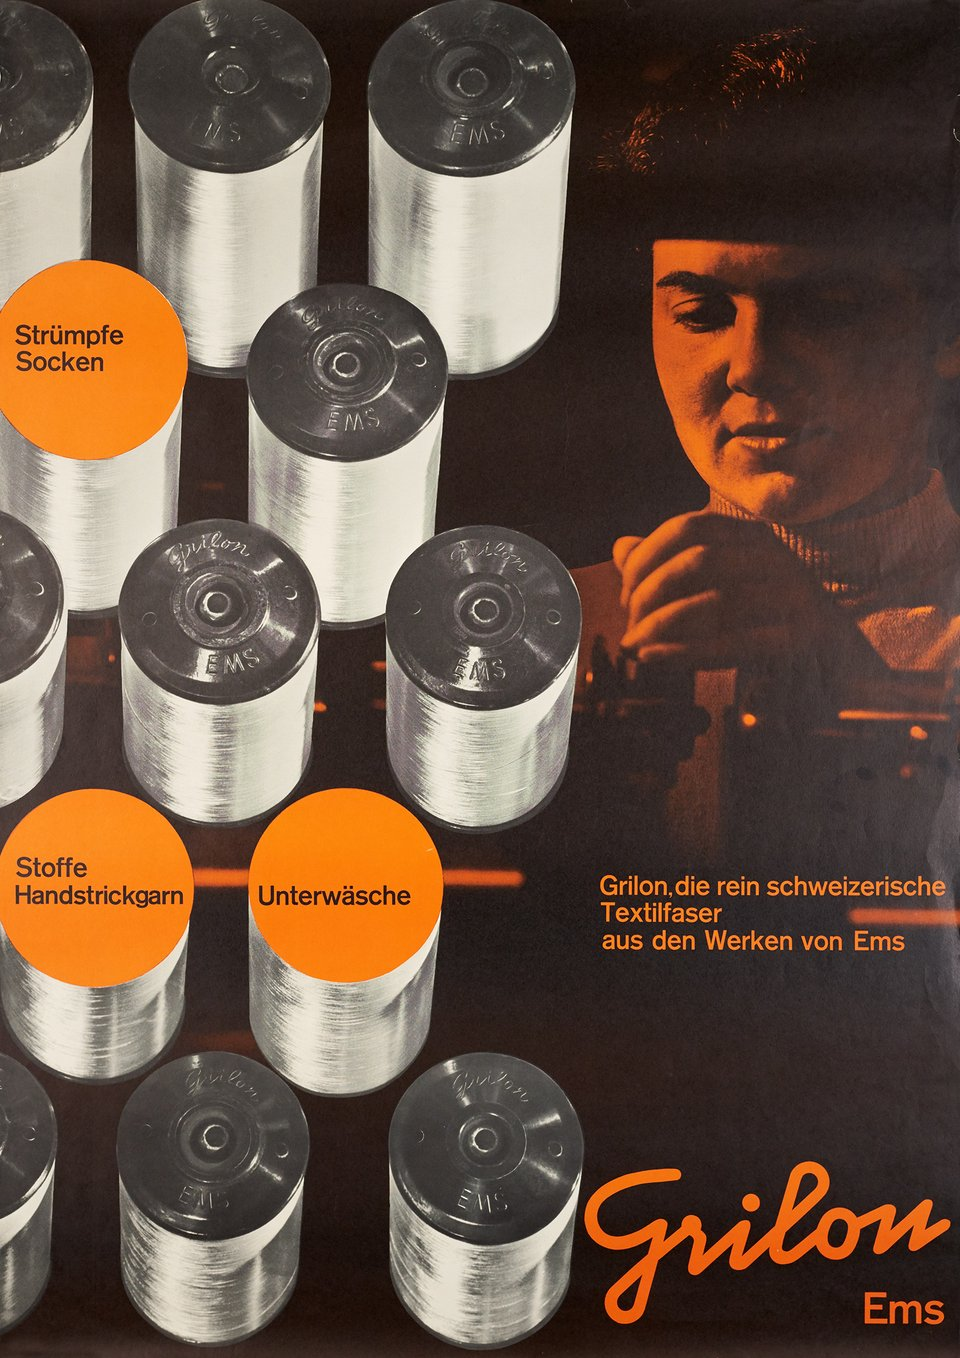 Grilon Ems – Affiche ancienne – Friedrich ENGESSER – 1956